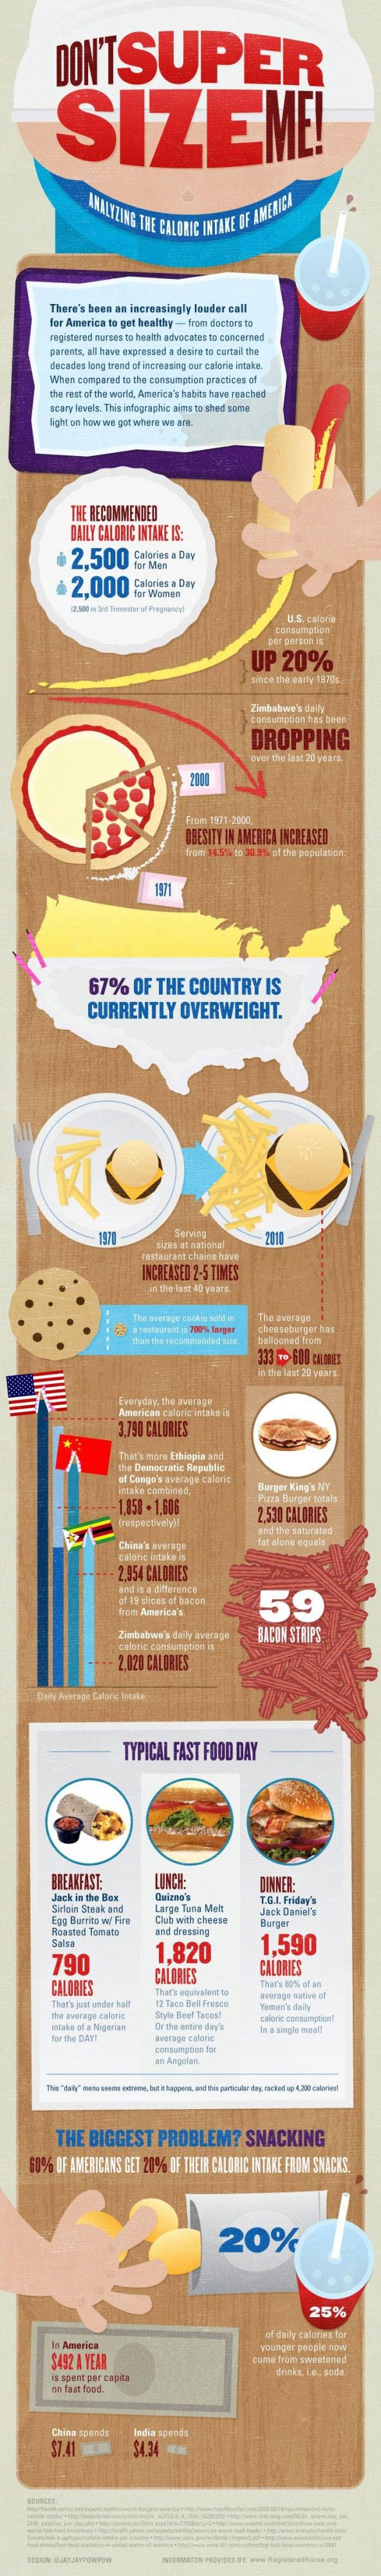 Don't SuperSize Me! - Analyzing the Caloric Intake of America